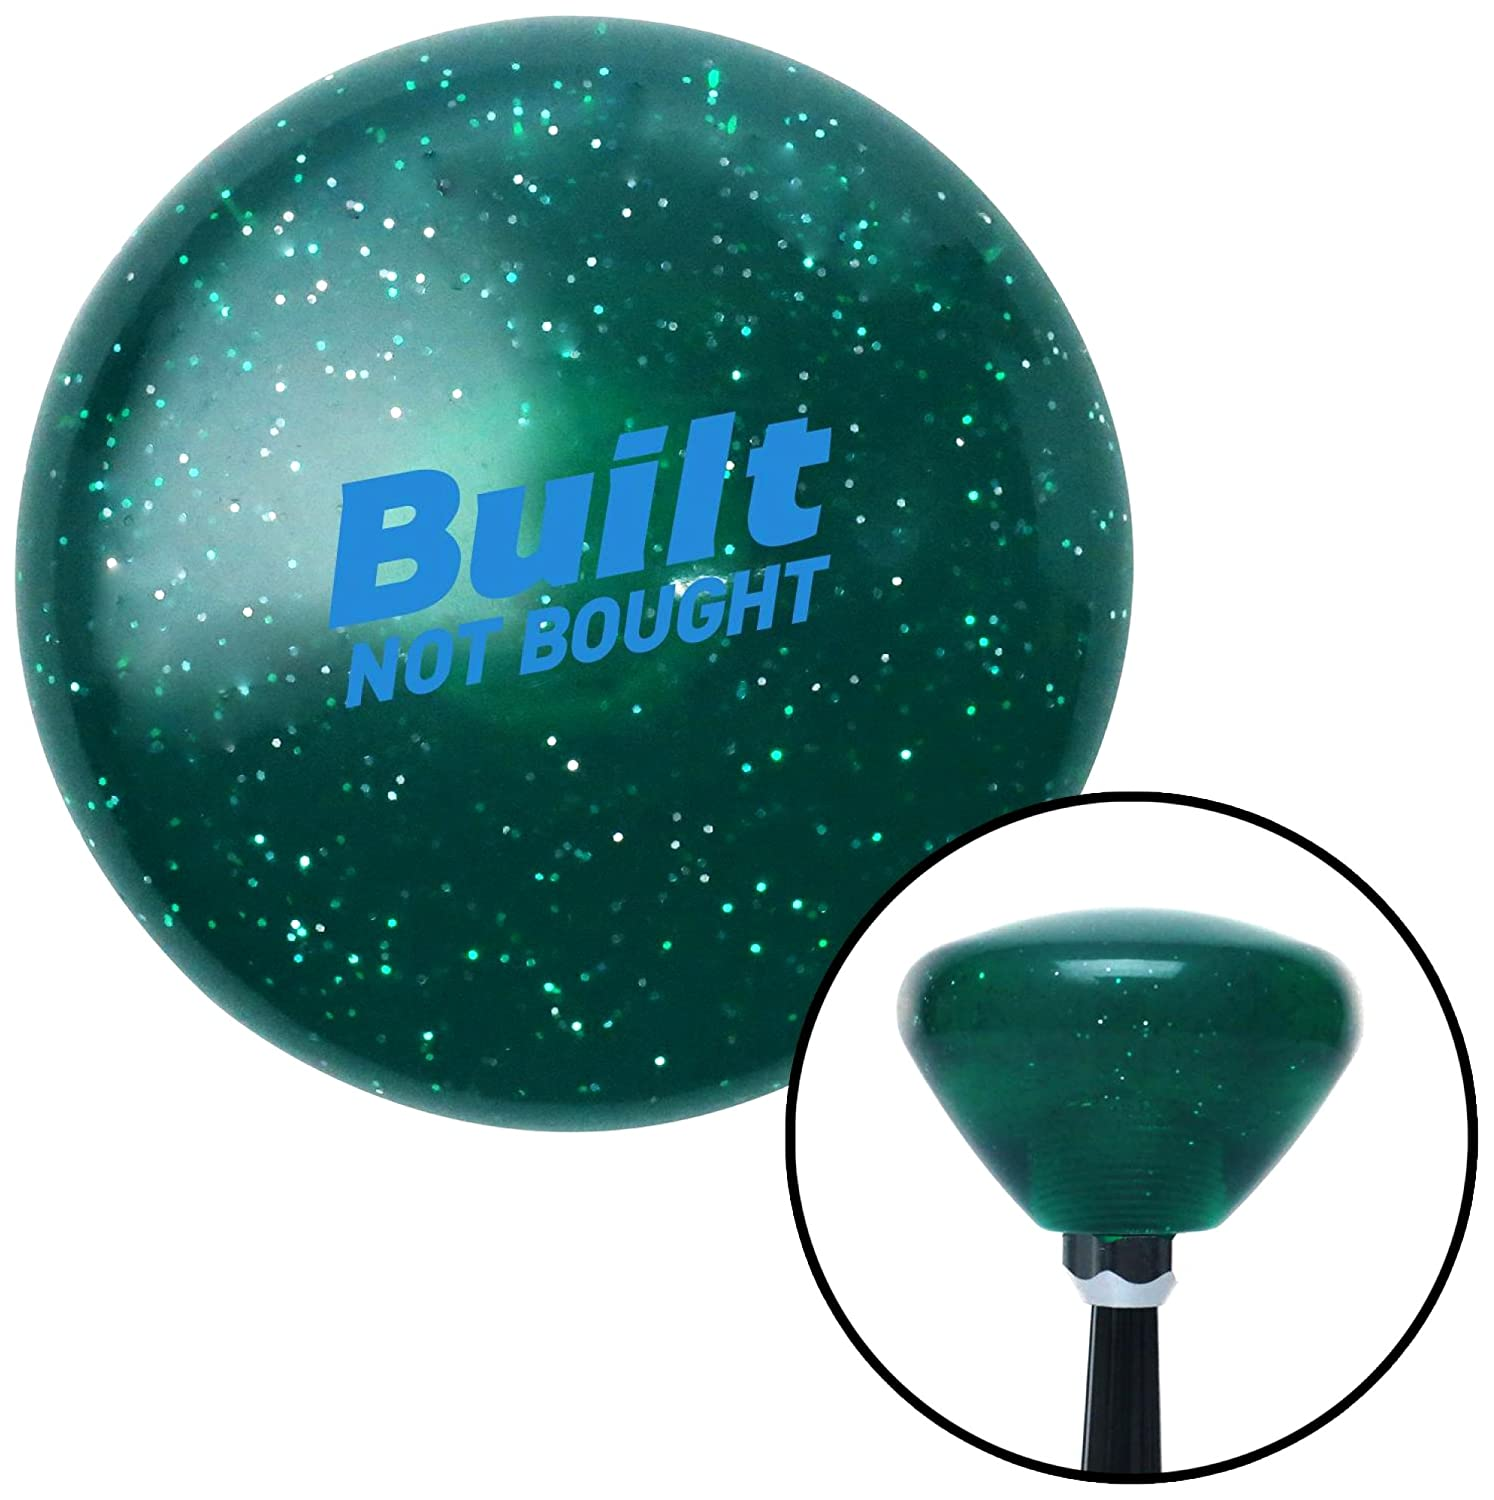 American Shifter 327727 Orange Built Not Bought Simple Green Retro Metal Flake Shift Knob with M16 x 1.5 Insert